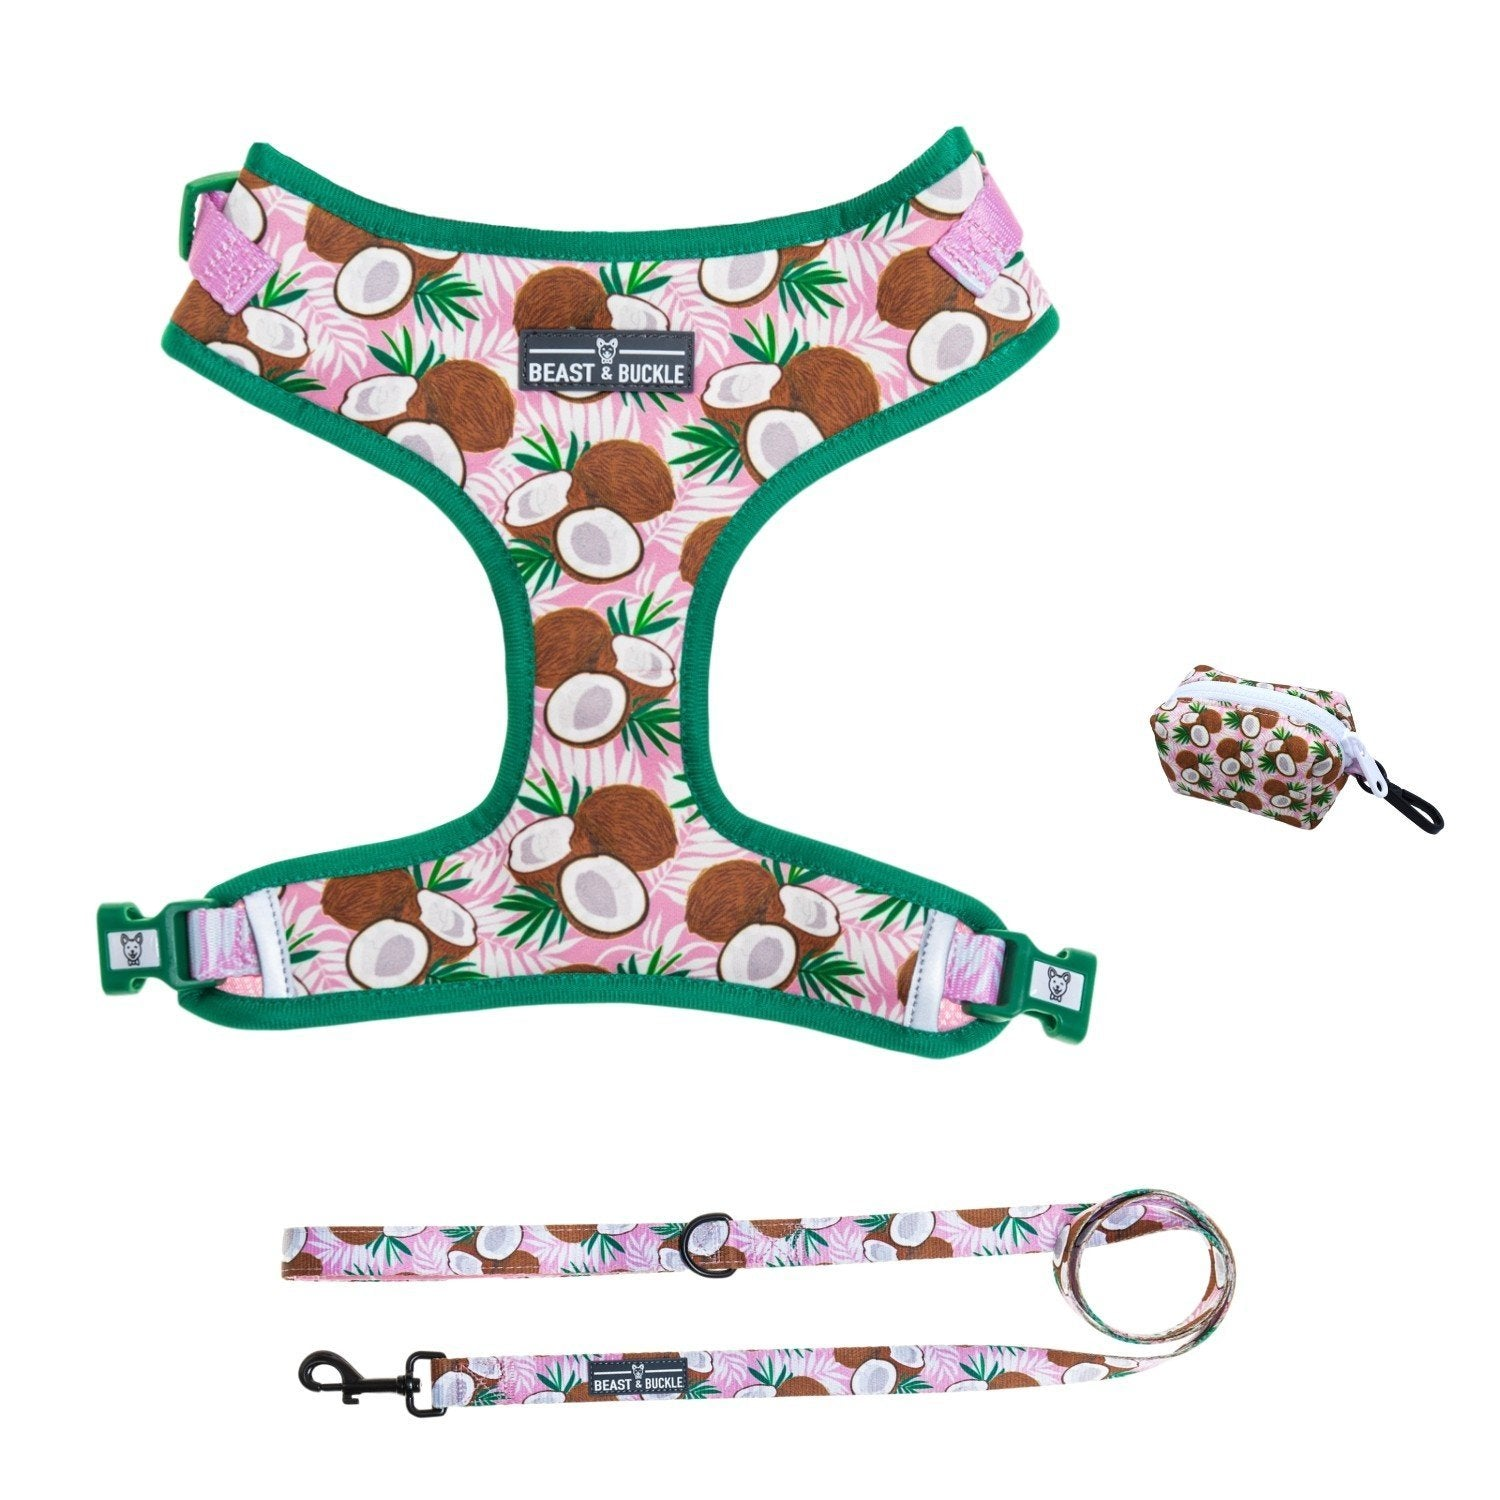 Coconut Walking Bundle - Beast & Buckle